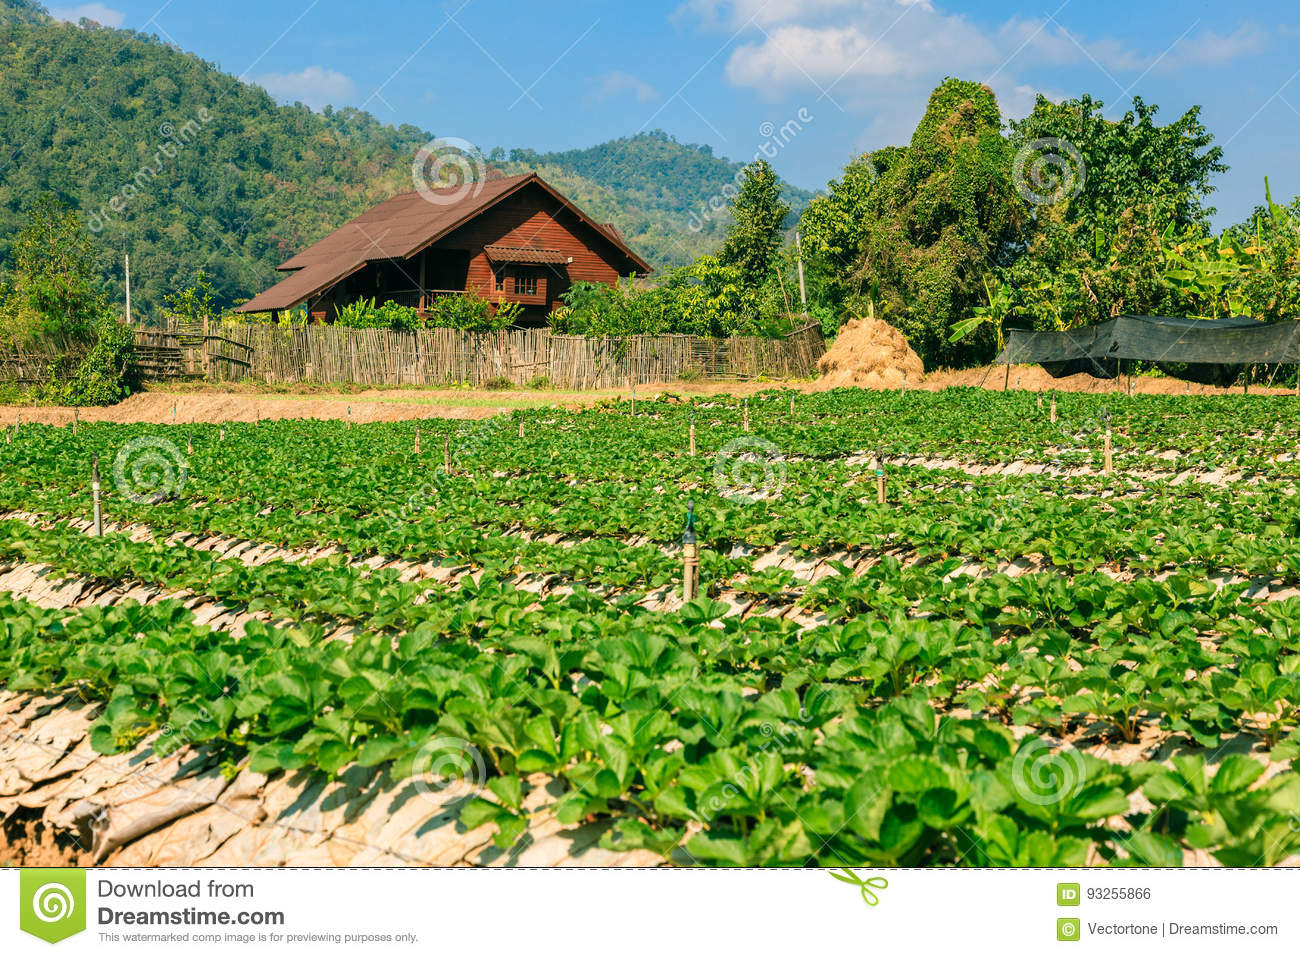 Landscape of agriculture organic field.